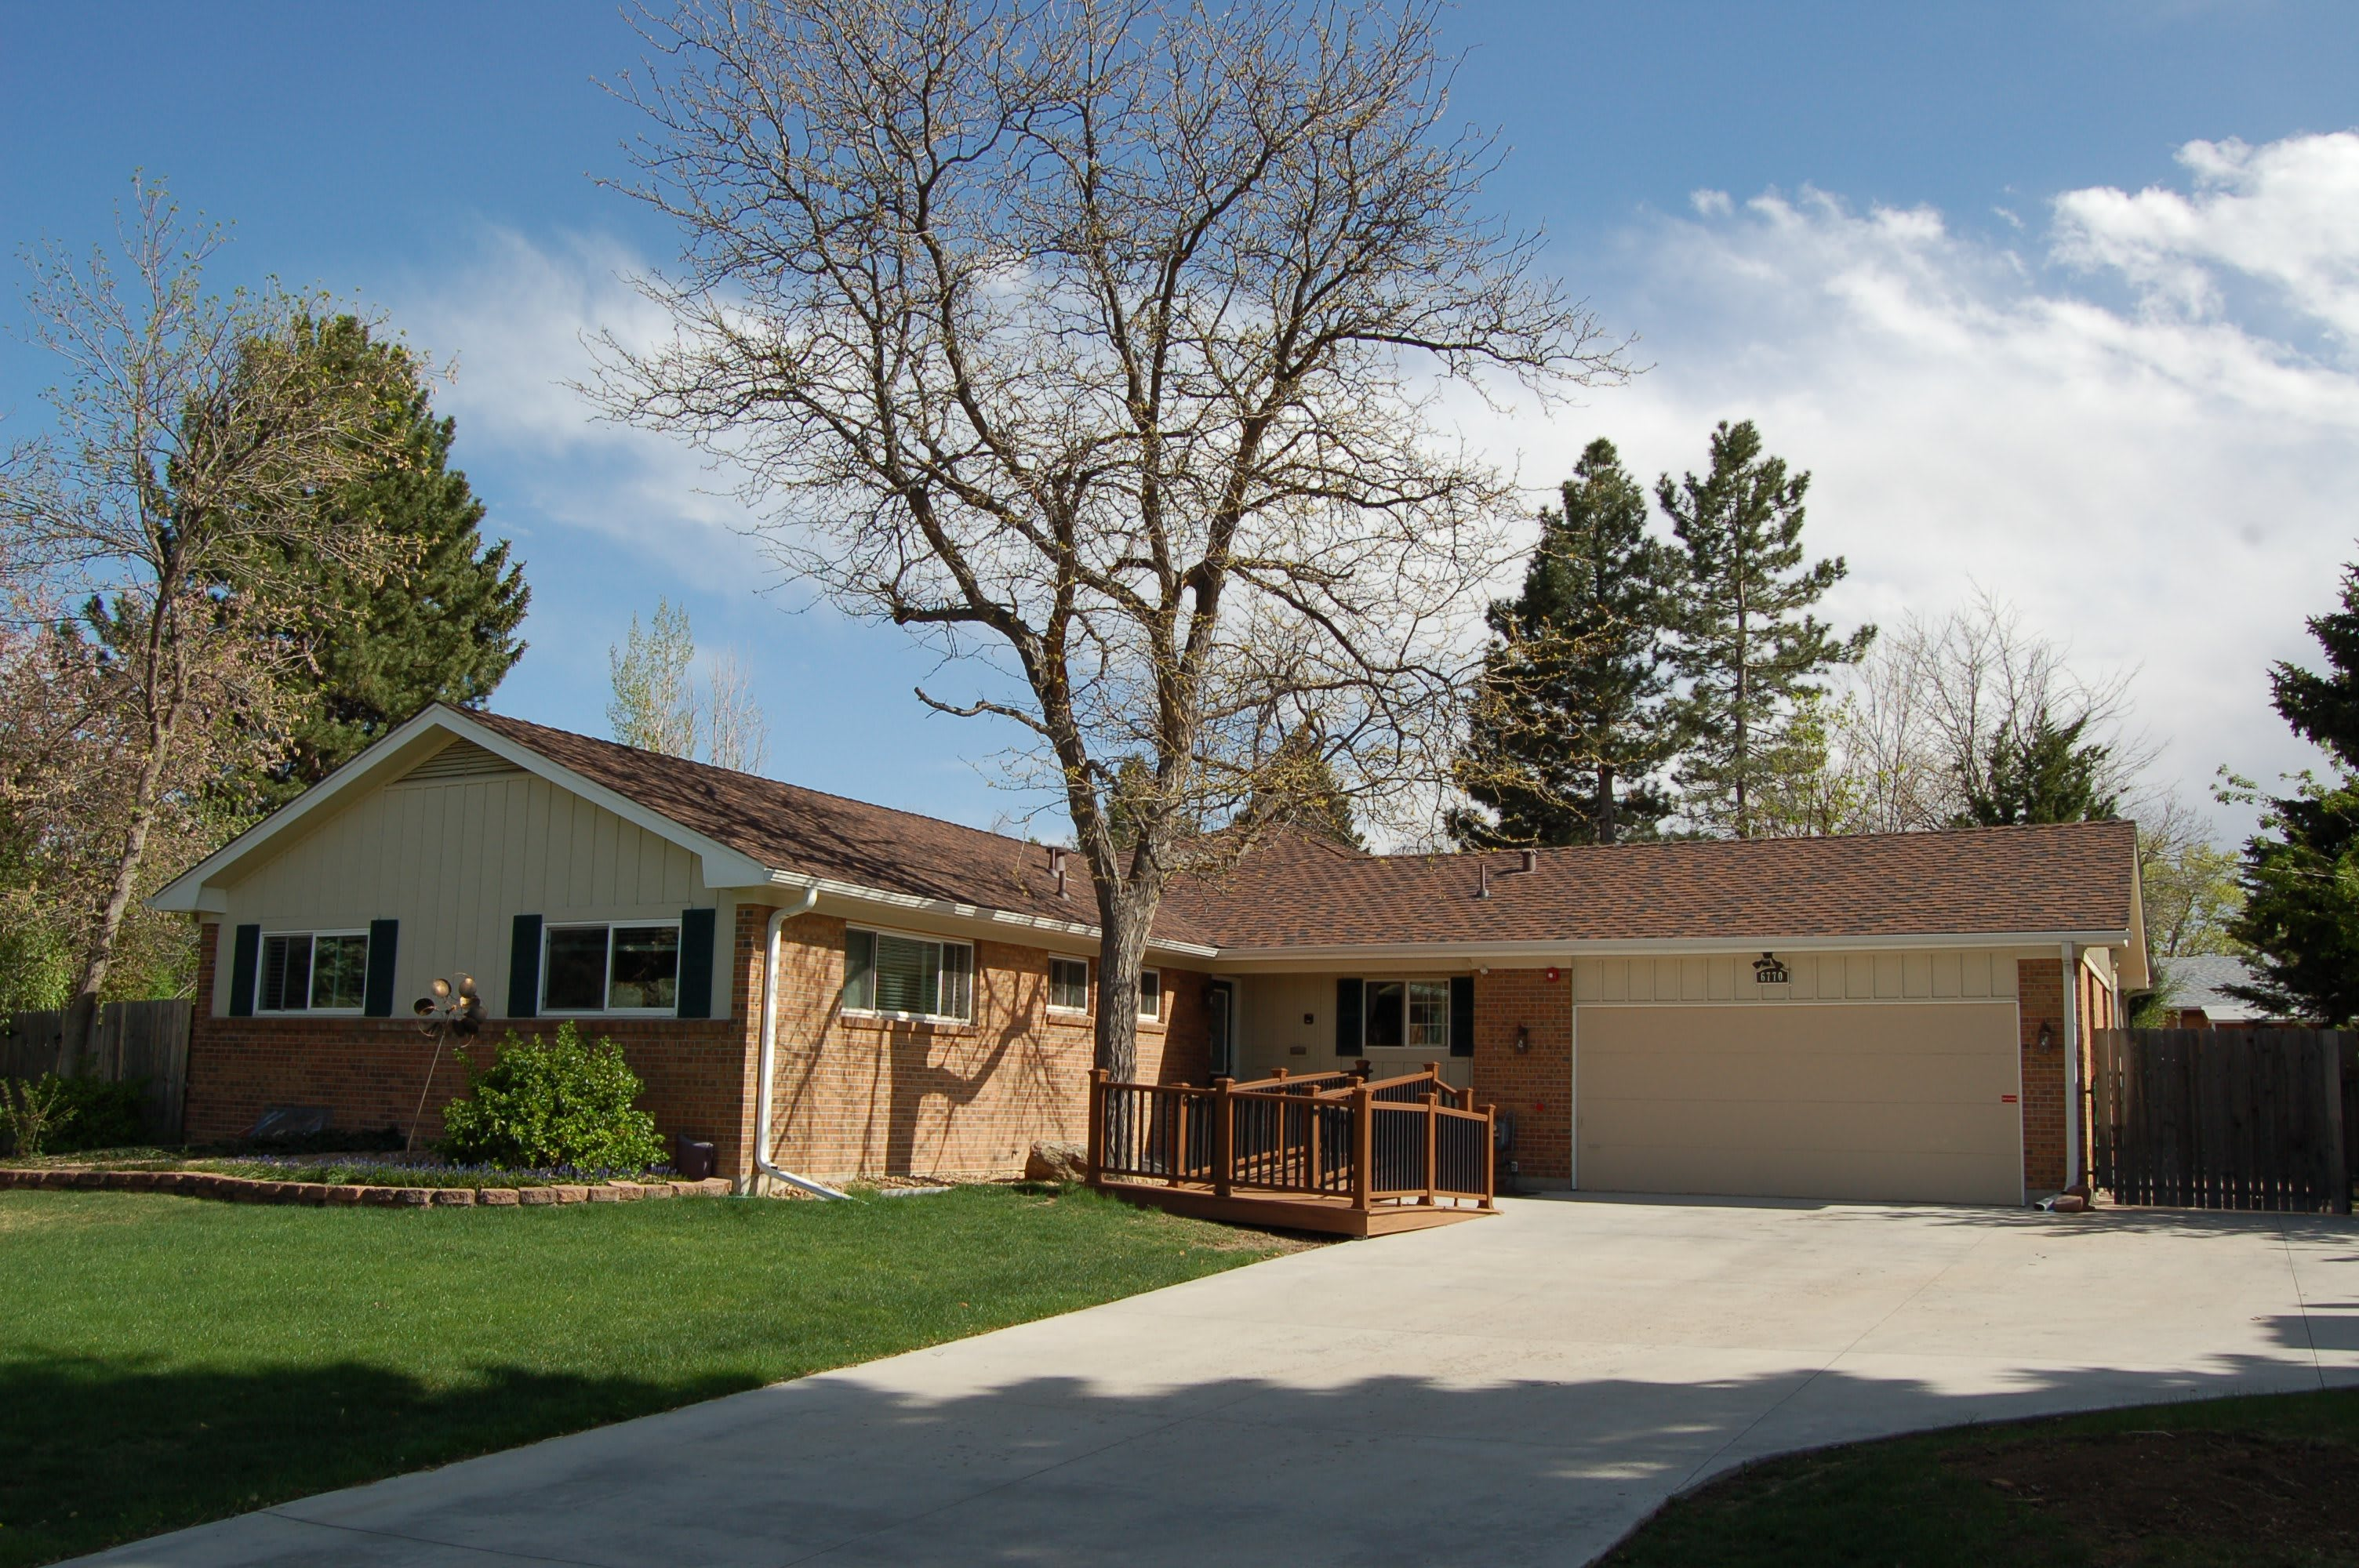 Photo 1 of Serenity House Assisted Living Kit Carson